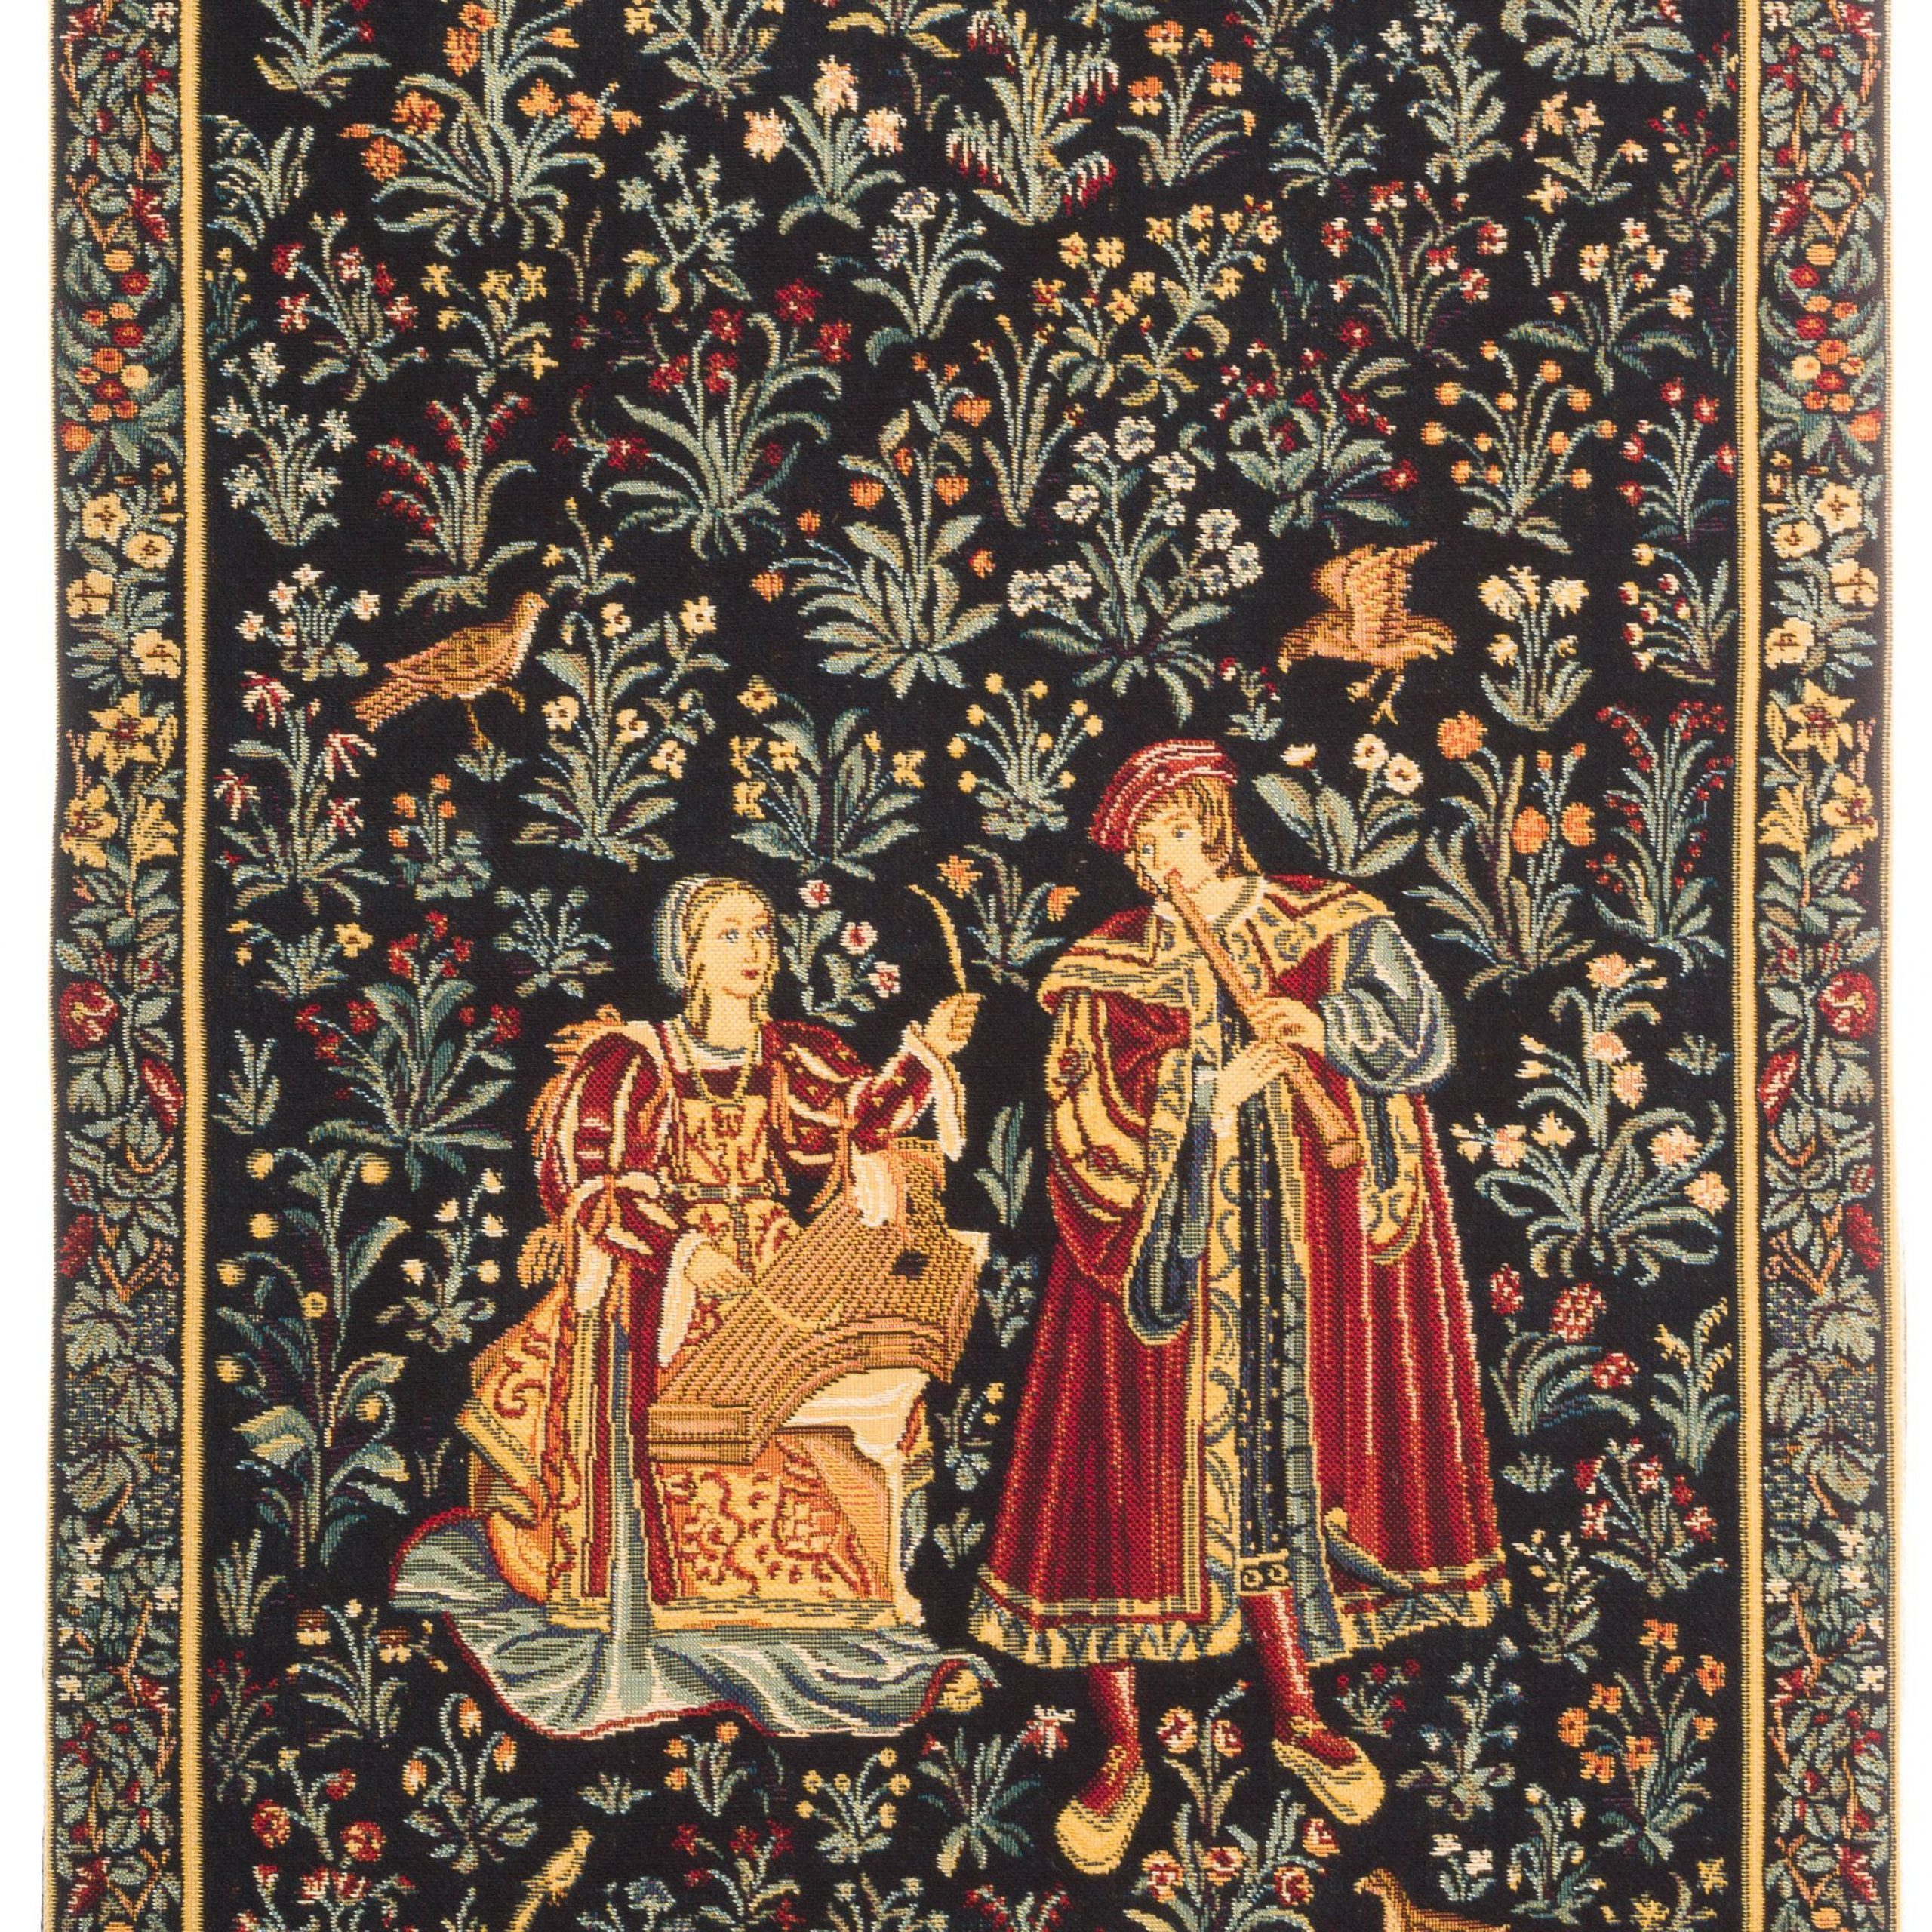 Widely Used Blended Fabric Mucha Autumn European Wall Hangings For Medieval Tapestry Wall Hanging Concert Scene Millefleurs (View 15 of 20)